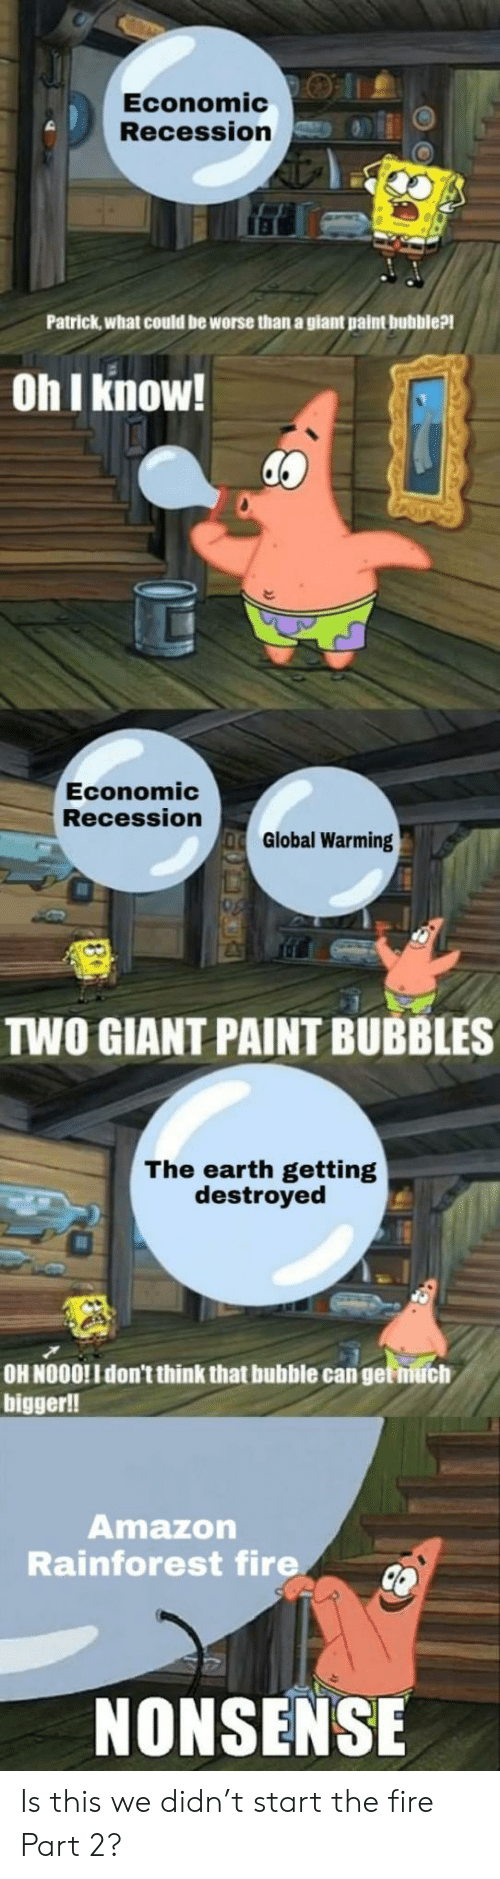 Nonsense: Economic:O |1.  Recession  Patrick,what could be worse than a giant paint bubble?!  Oh I know!  Economic  Recession  Global Warming  TWO GIANT PAINT BUBBLES  The earth getting  destroyed  OH NOOO!I don't think that bubble can get niuch  bigger!!  Amazon  Rainforest fire  NONSENSE Is this we didn't start the fire Part 2?